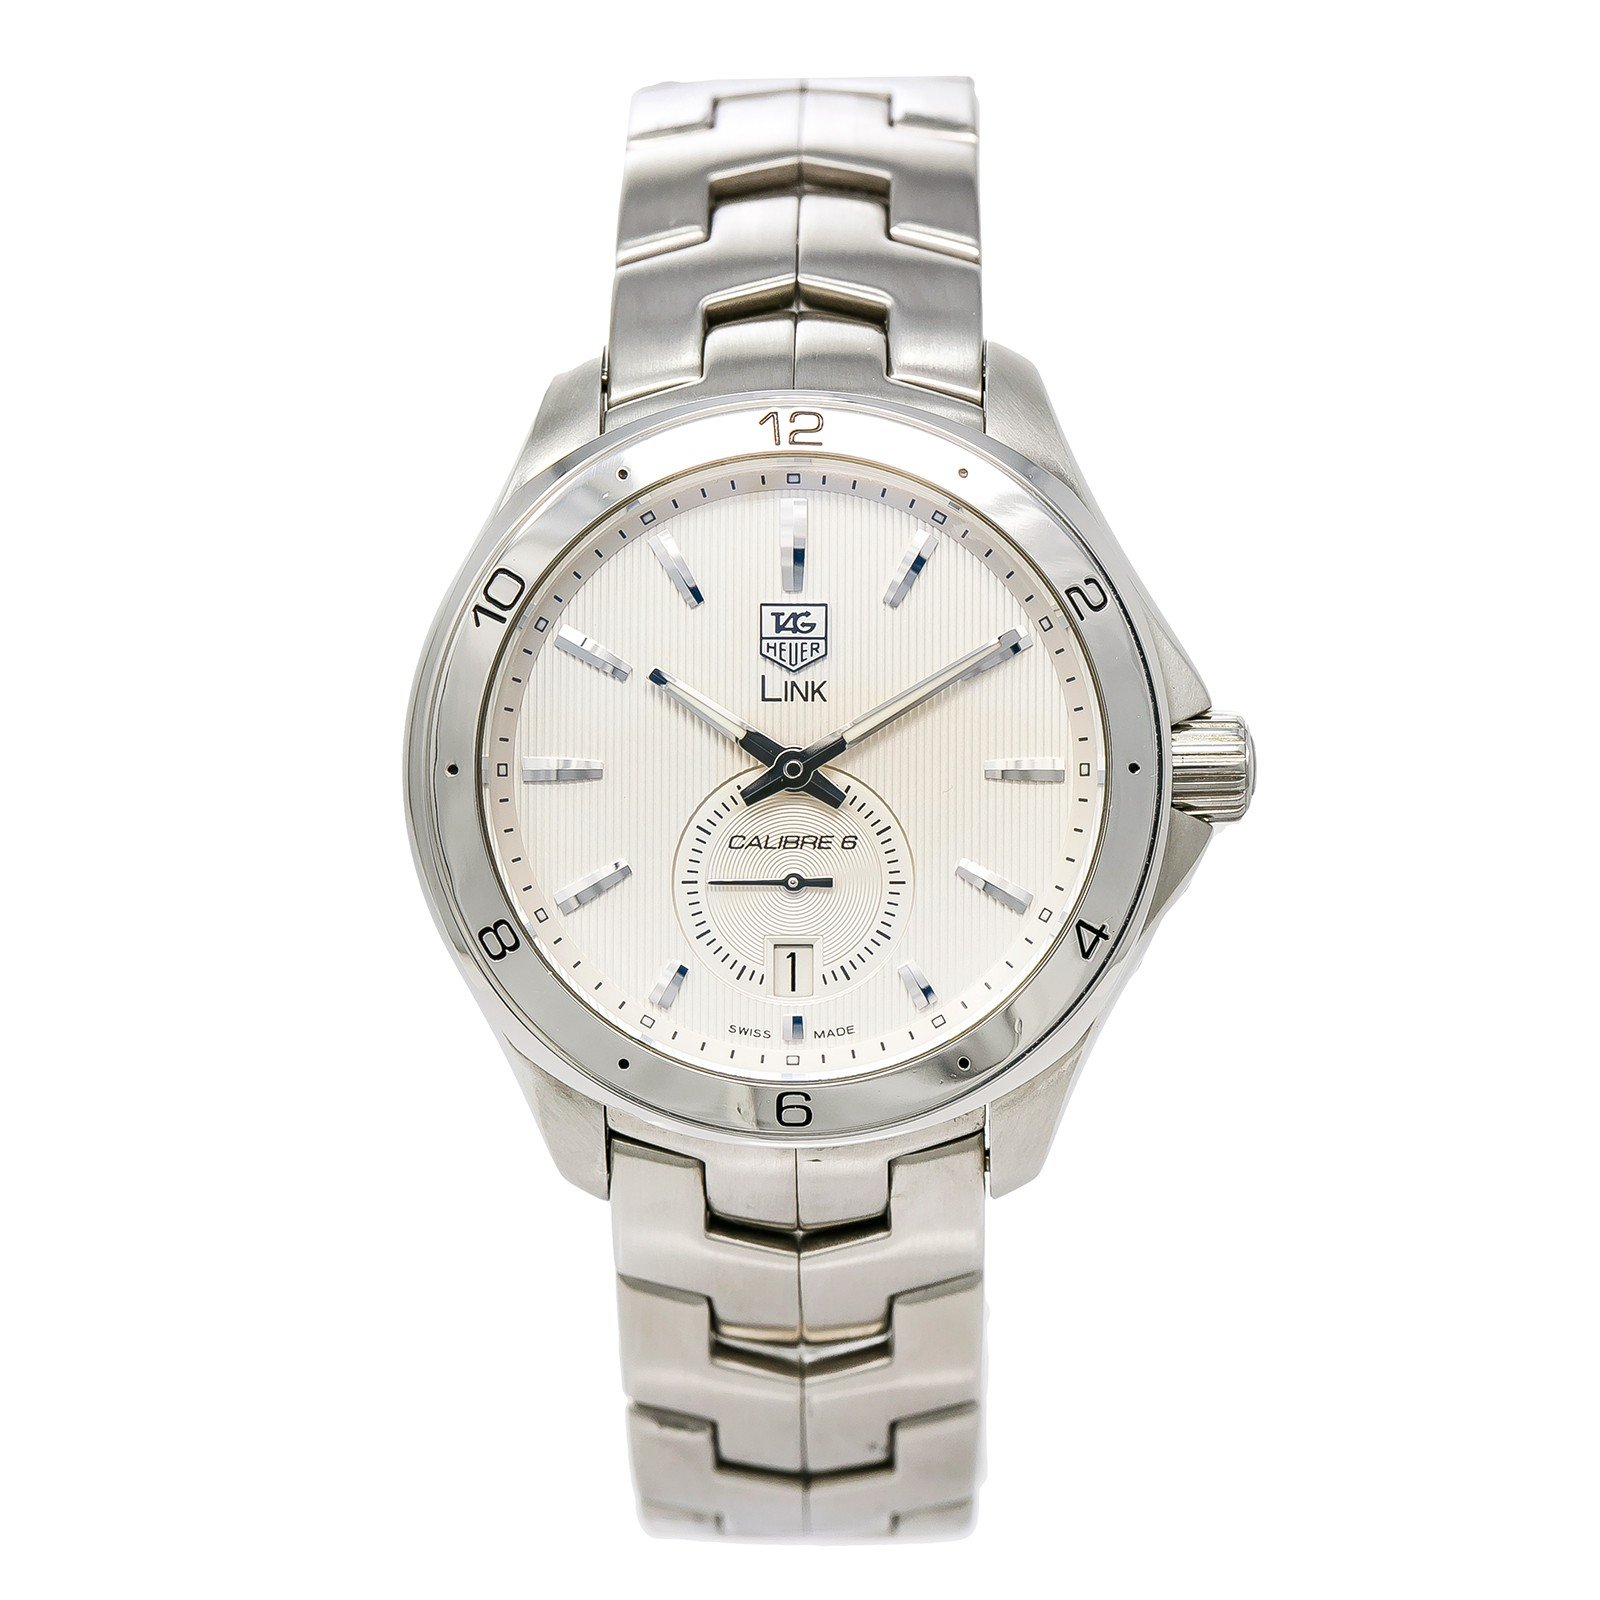 Tag Heuer Link Caliber 6 automatic-self-wind mens Watch WAT2111 (Certified Pre-owned)